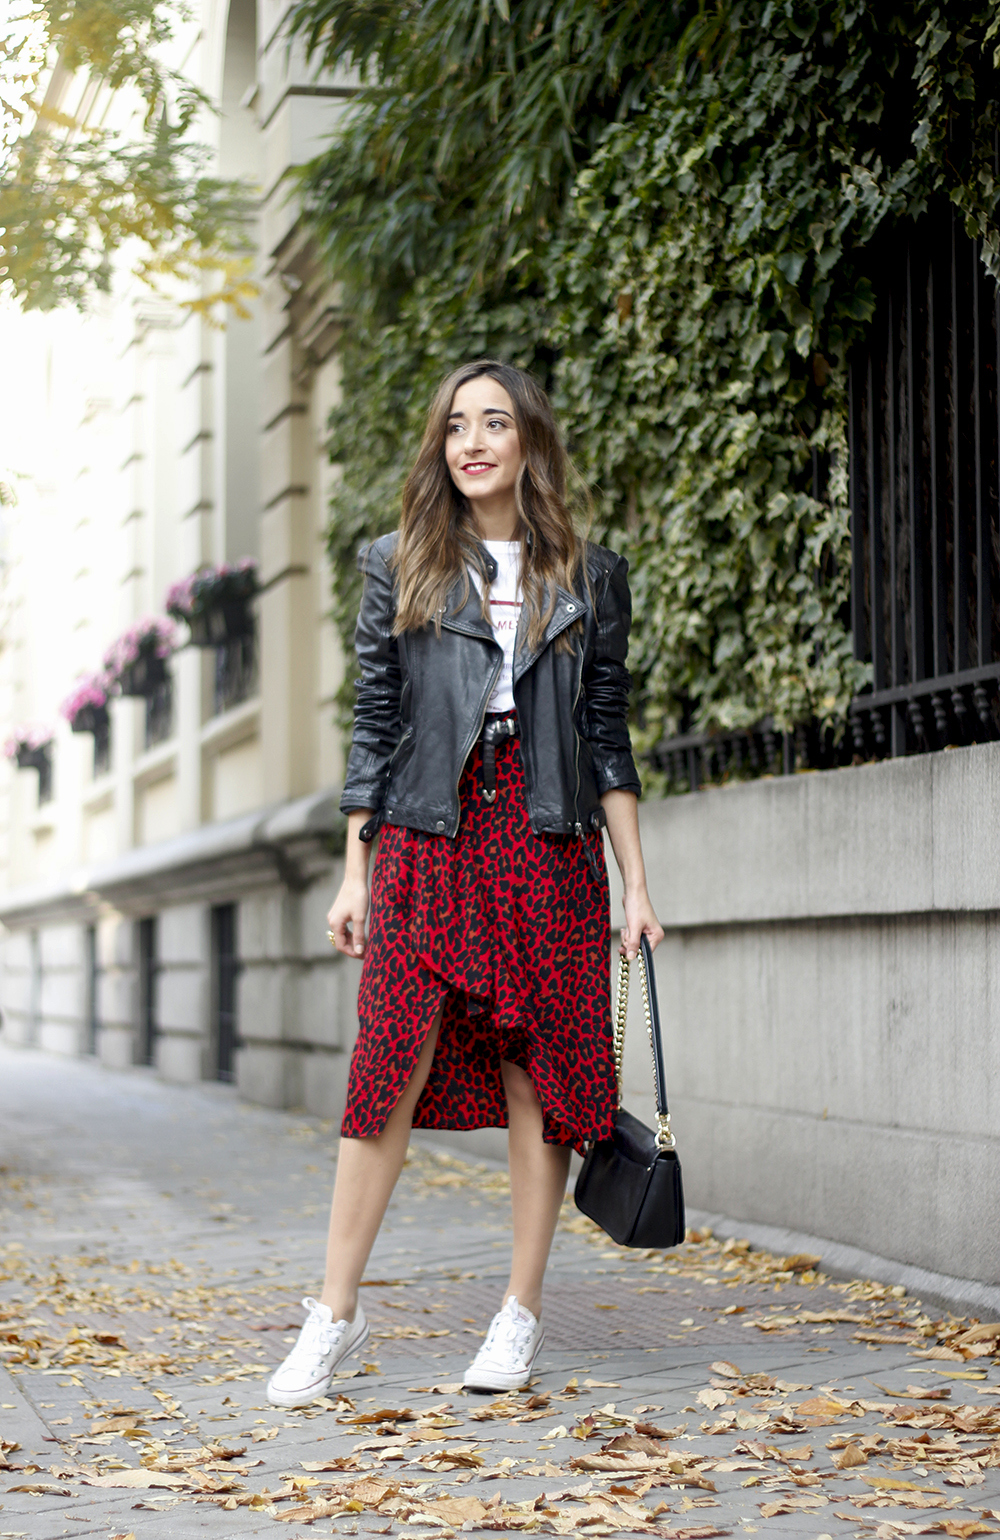 midi skirt red leopard print trend black biker jacket converse street style fall outfit 20186054